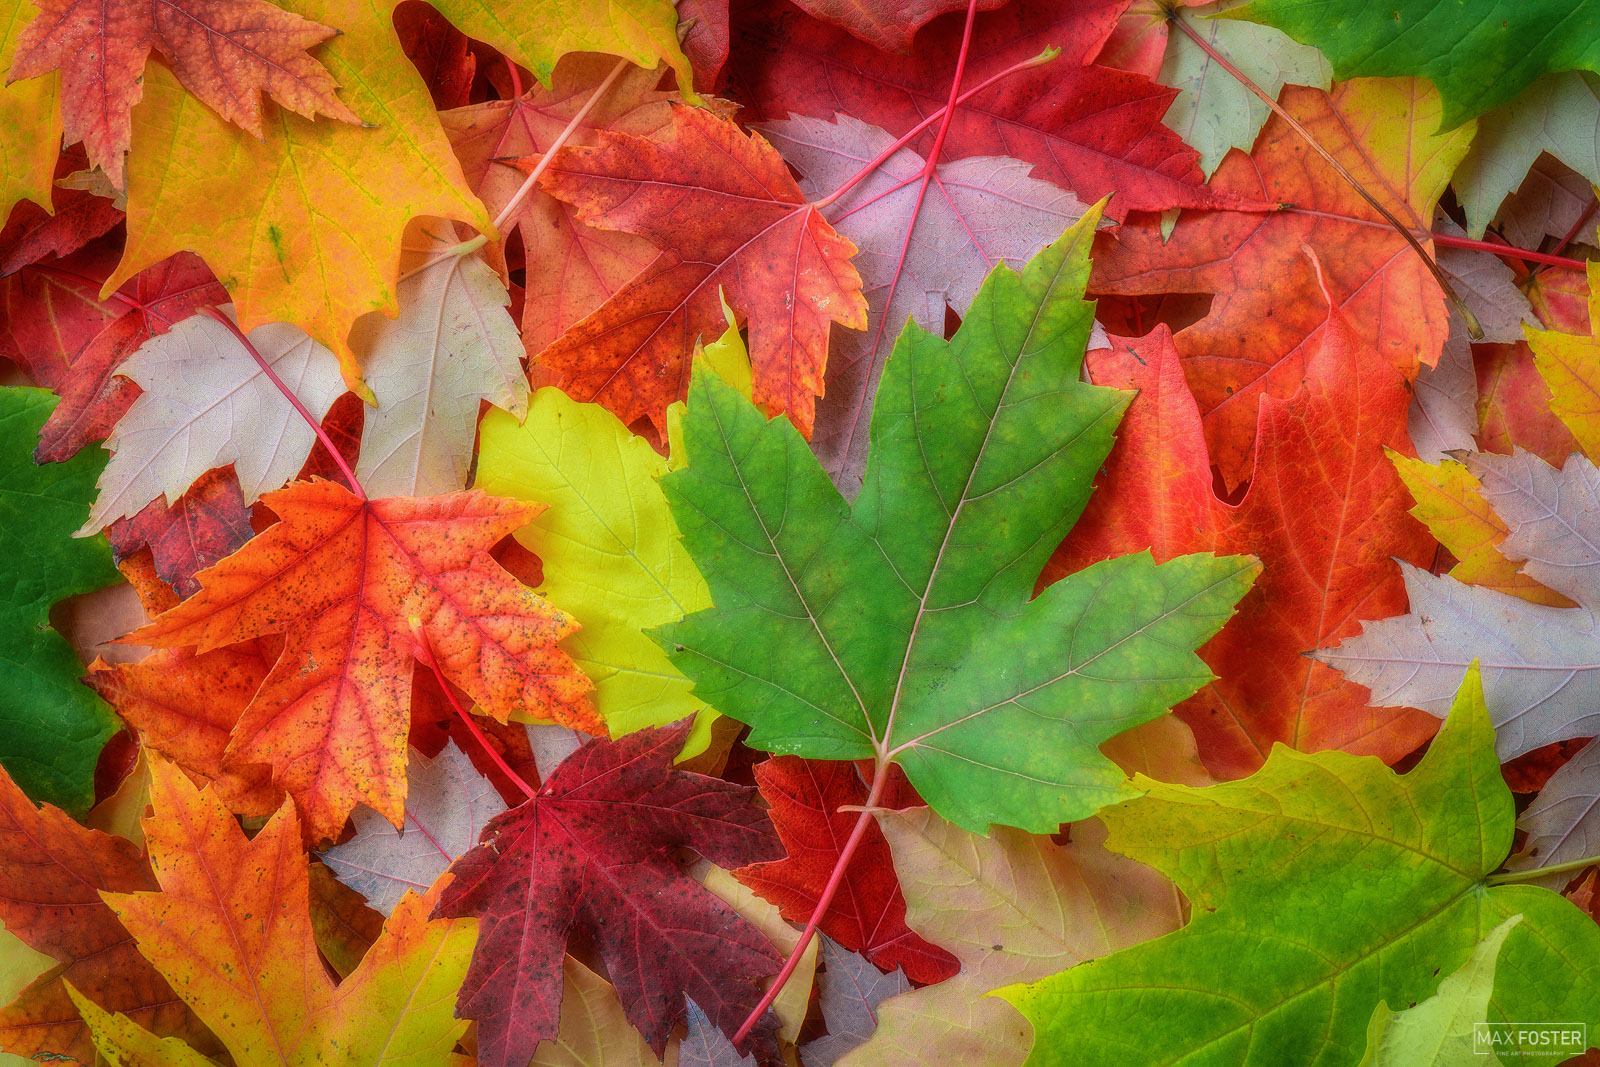 Minneapolis, Minnesota, Colorfall, Fall, Color, Leaf, Green, Chlororphyll, Autumn, Changing, photo